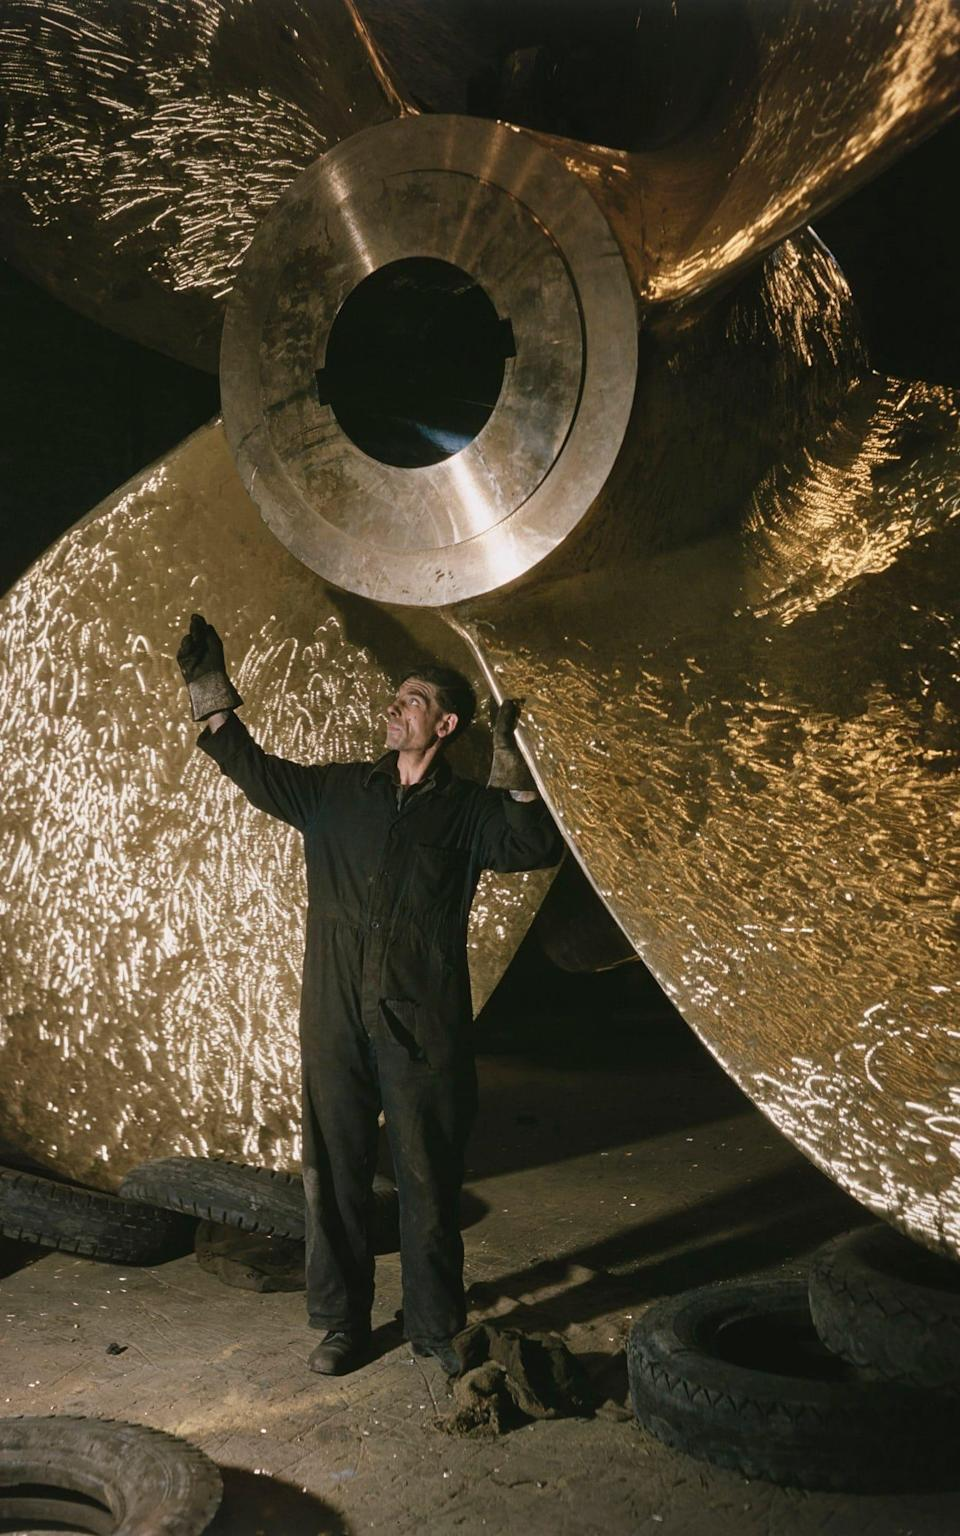 A metalworker at J Stone & Co checks the propeller for the ocean liner SS Orcades, 1947 - Westwood/Popperfoto via Getty